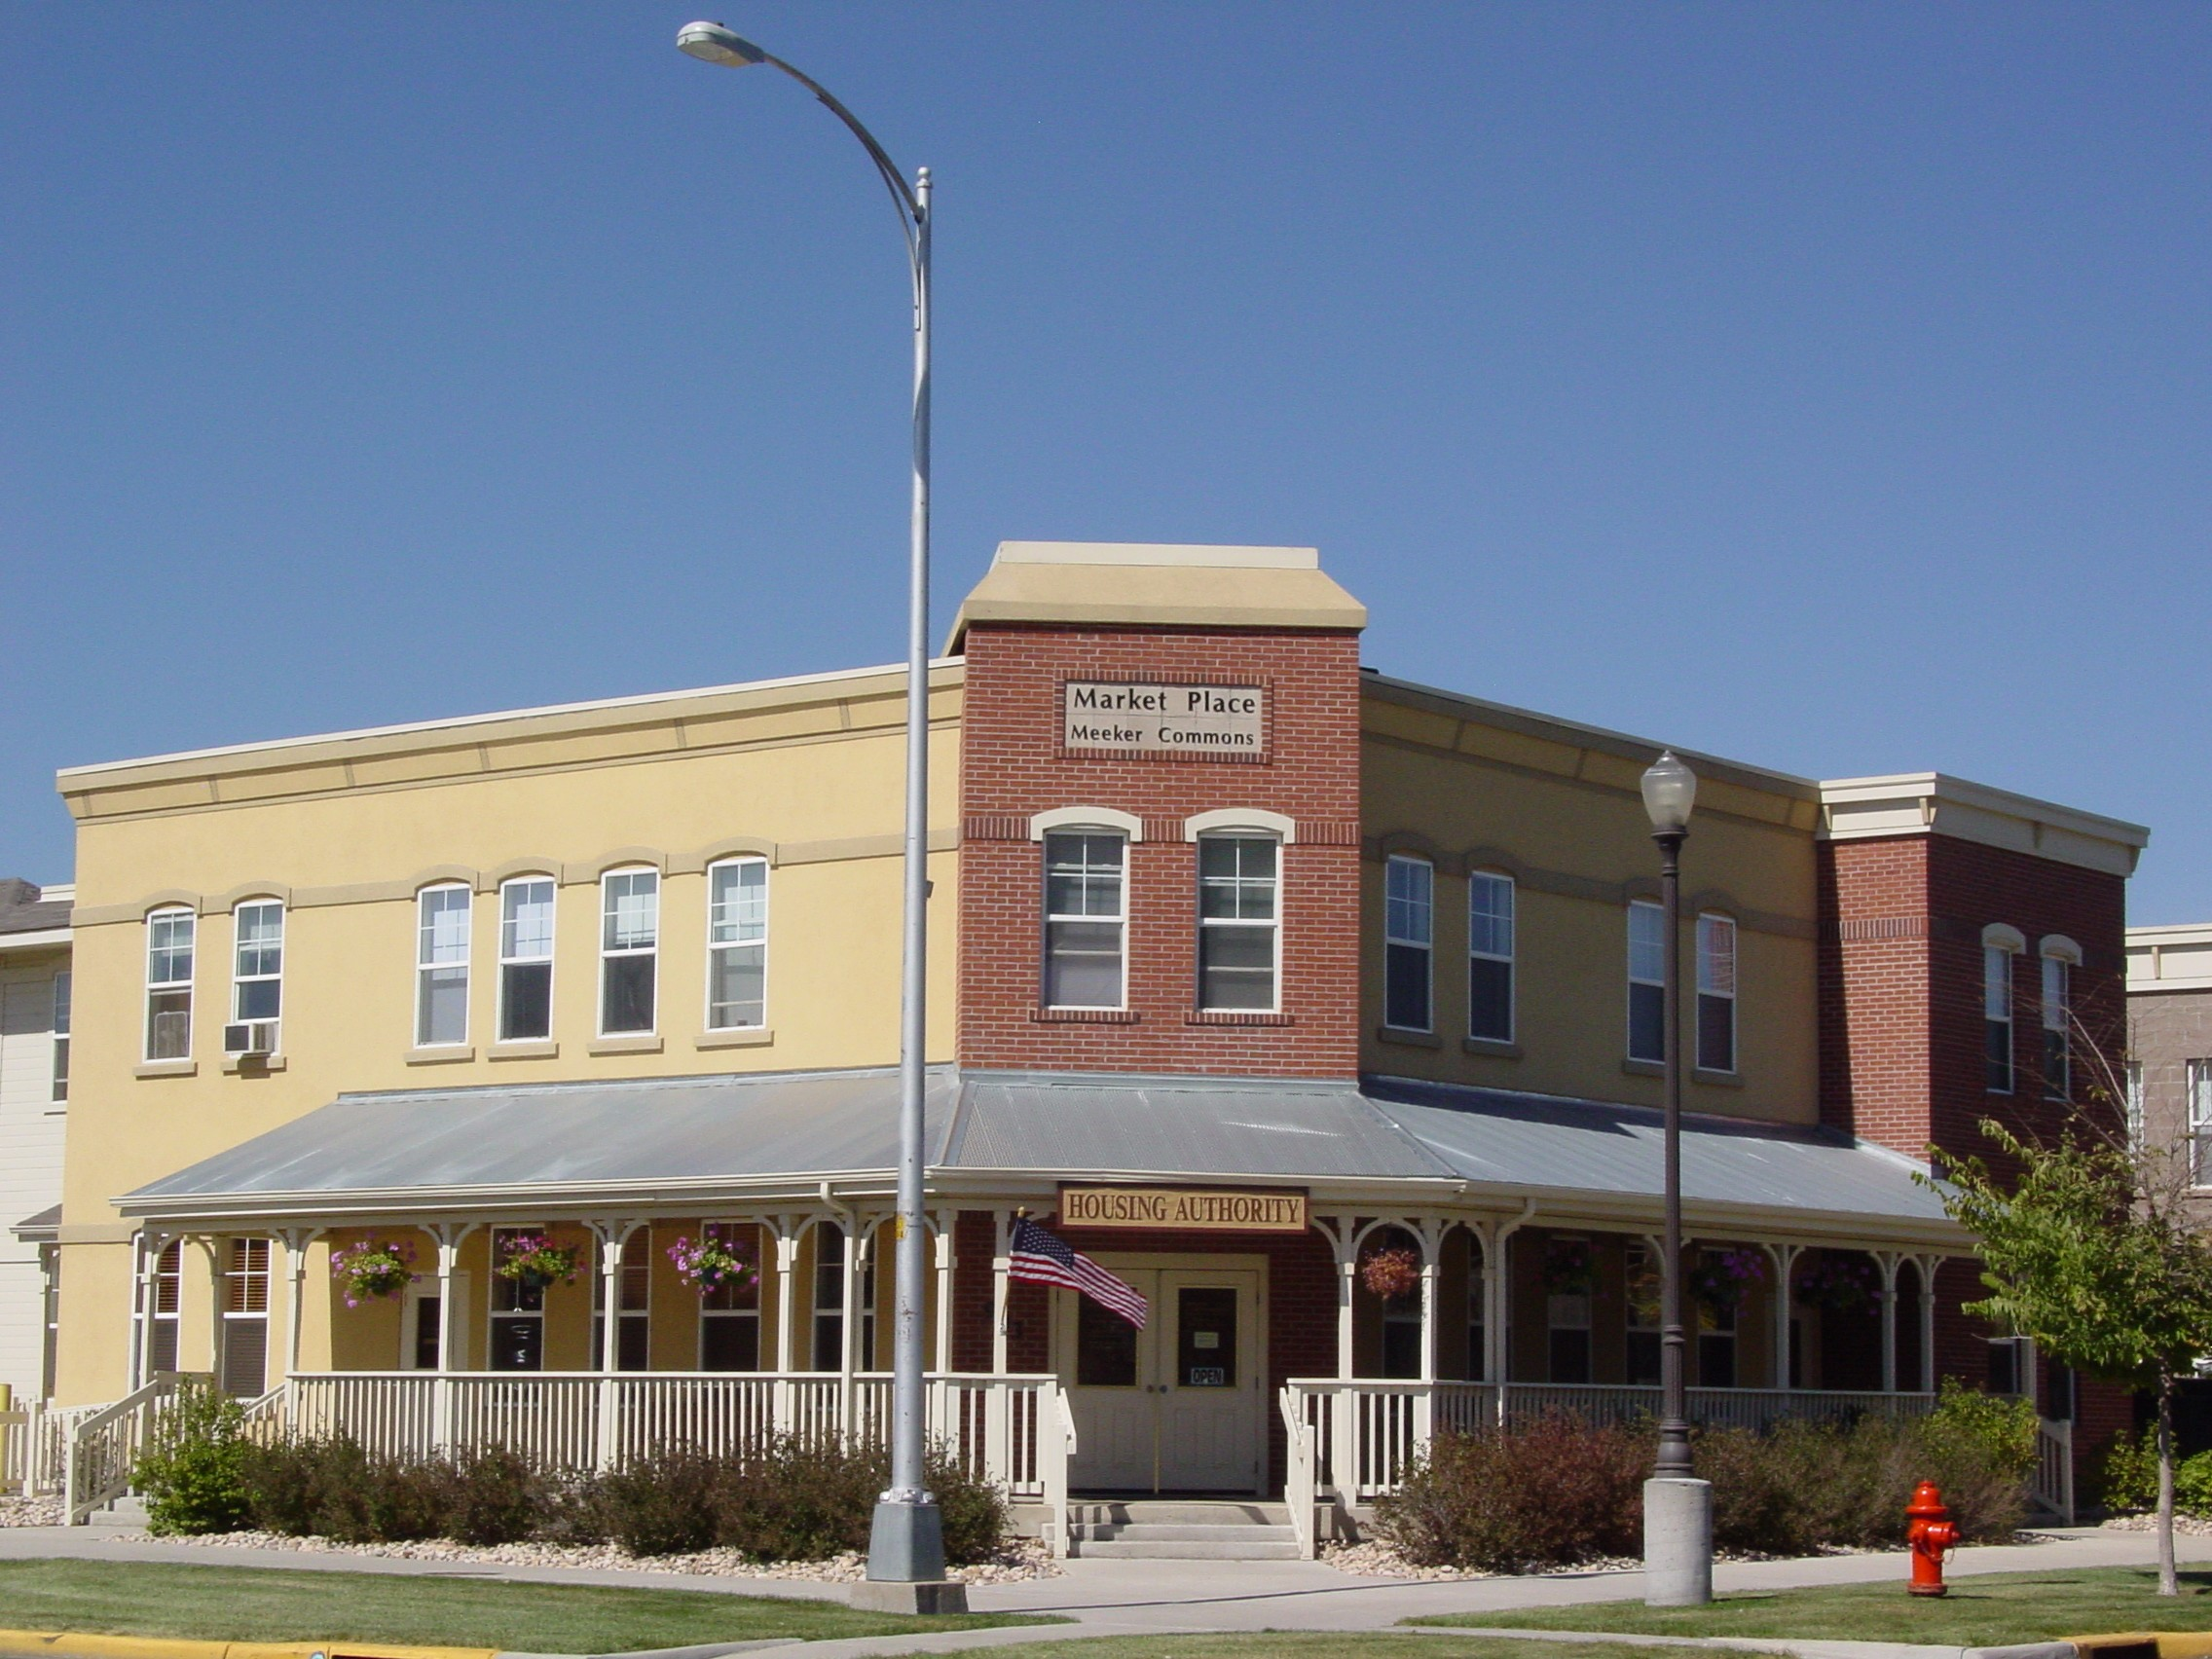 Market Place Meeker Commons